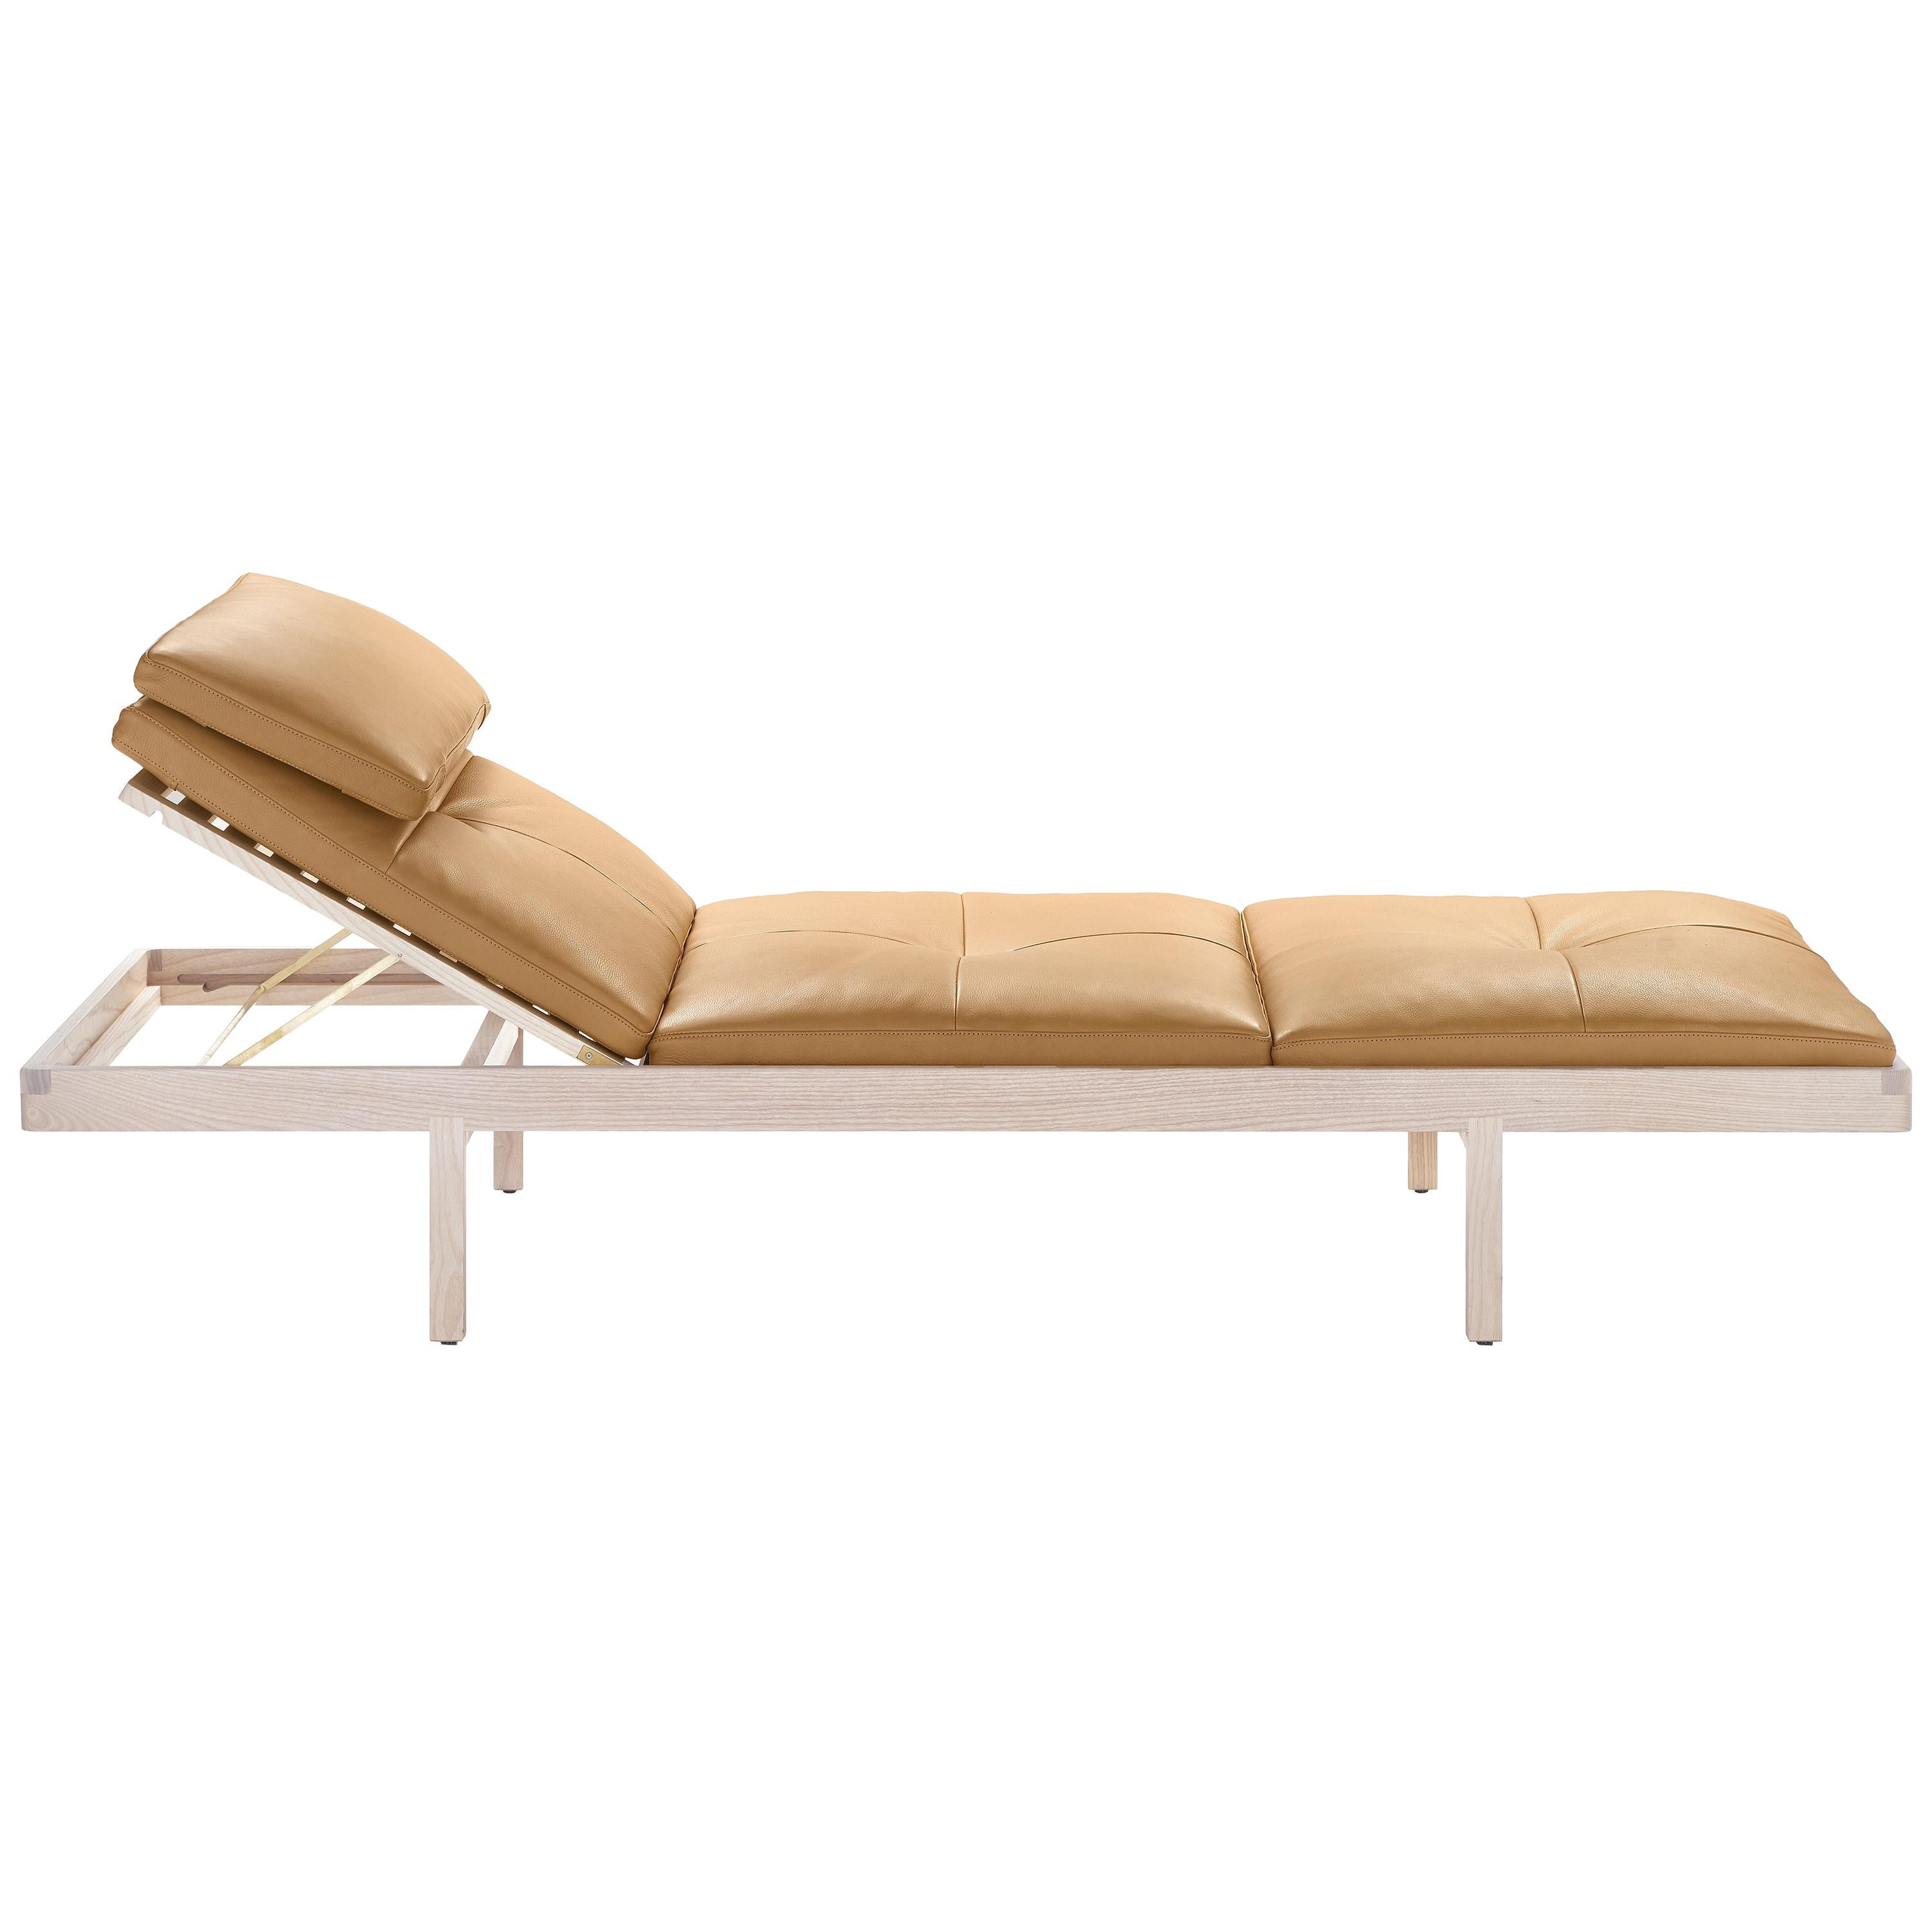 Daybed in White Ash and Leather Designed by Craig Bassam